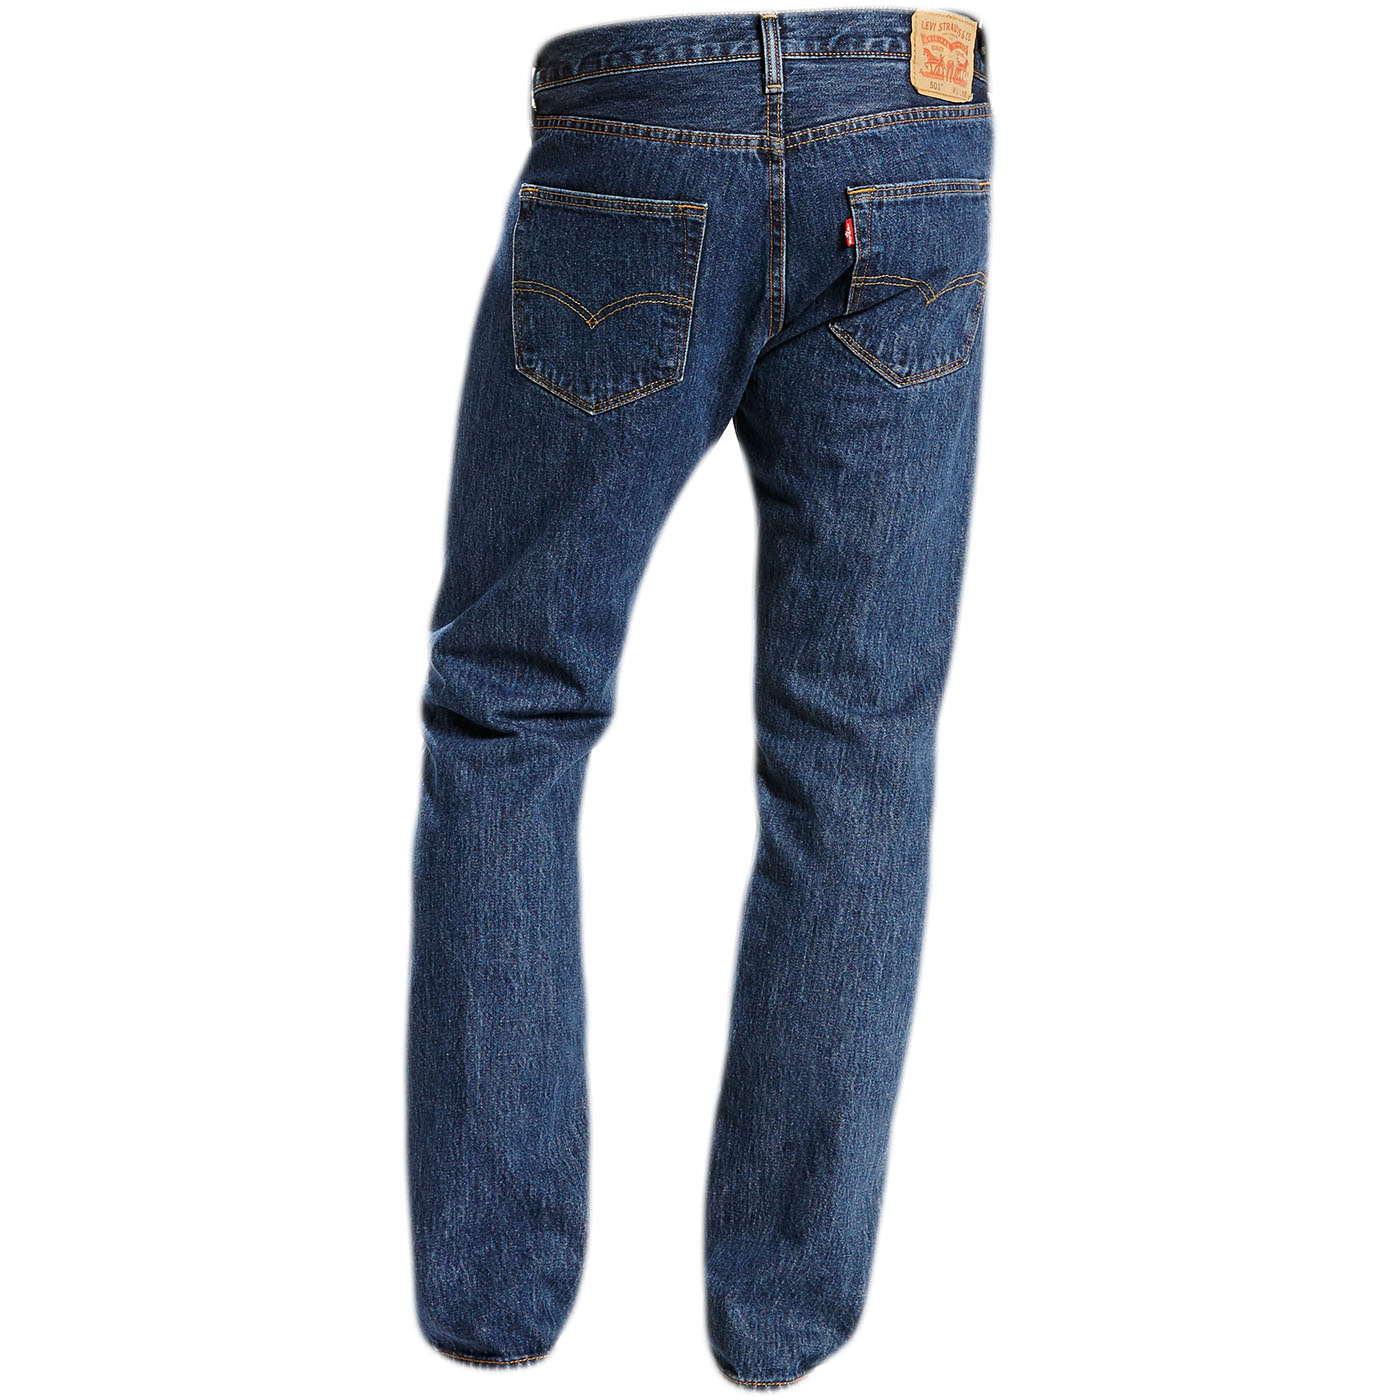 501 94 Levi Jeans Ebay And Big 01 Strauss Tall FTxqUg4w5x